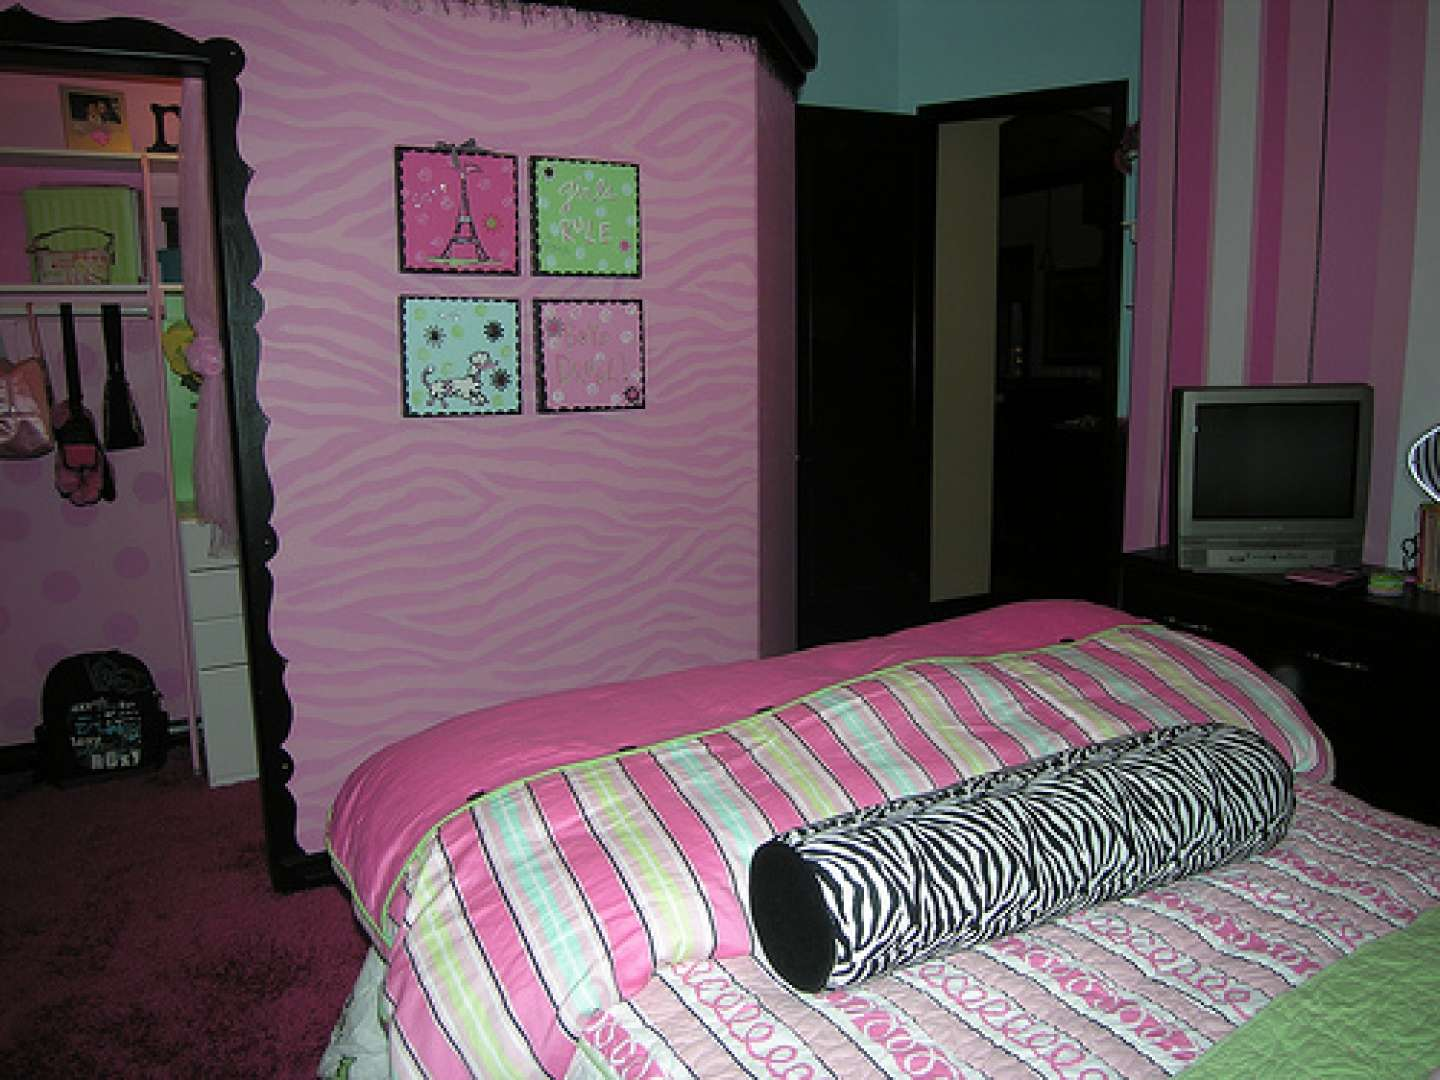 Decor Decorating Ideas Girls Room Houses Interior